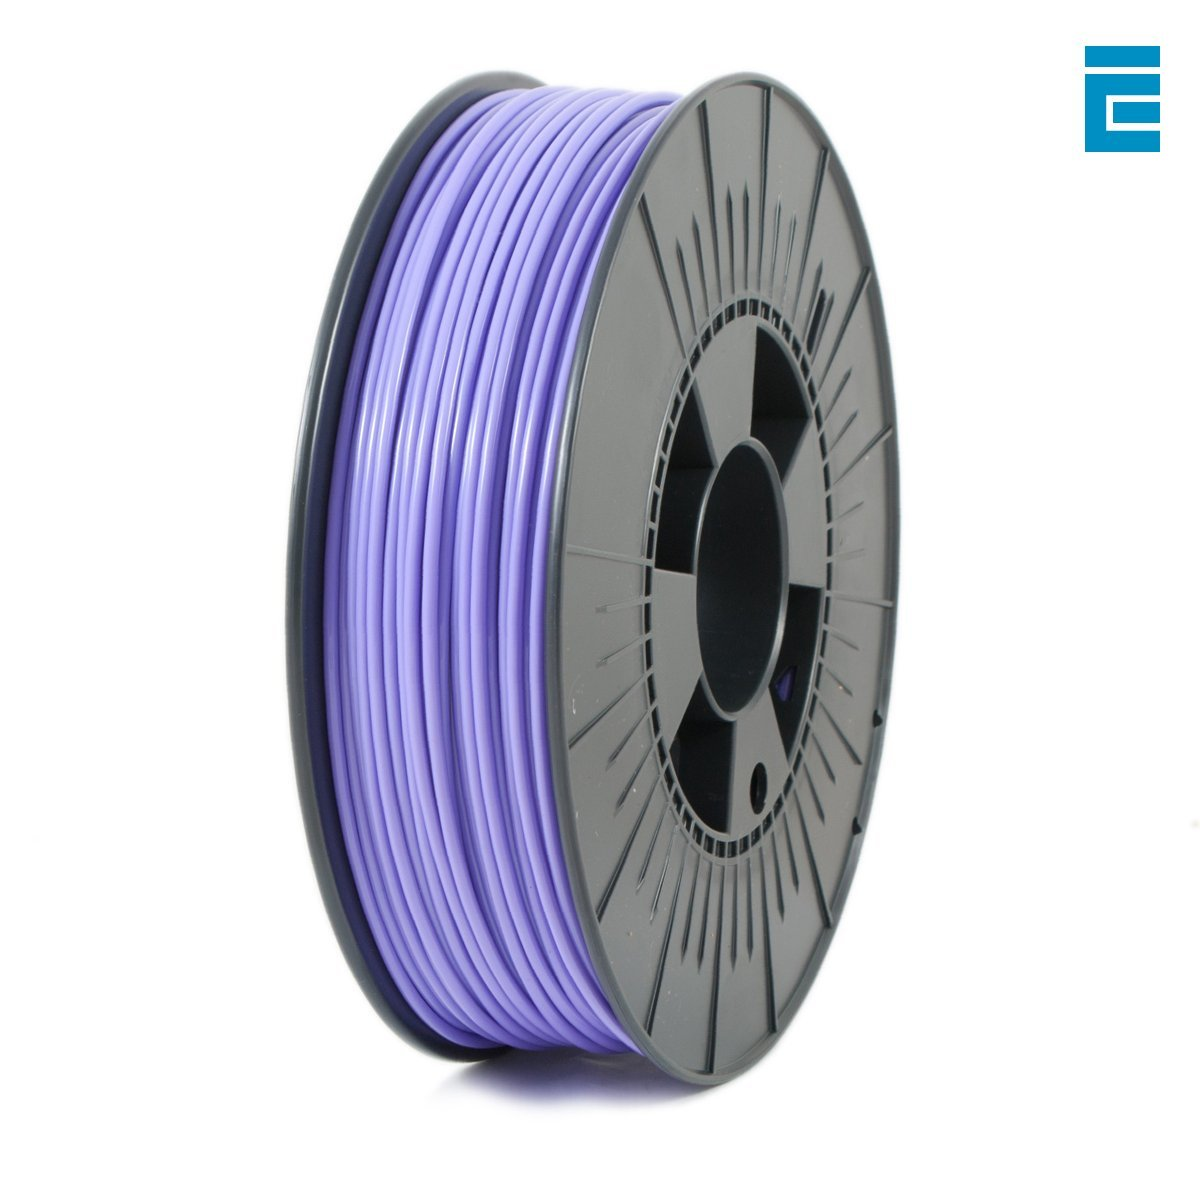 ICE Filaments ICEFIL3PLA018 PLA filament, 2.85mm, 0.75 kg, Perky Purple